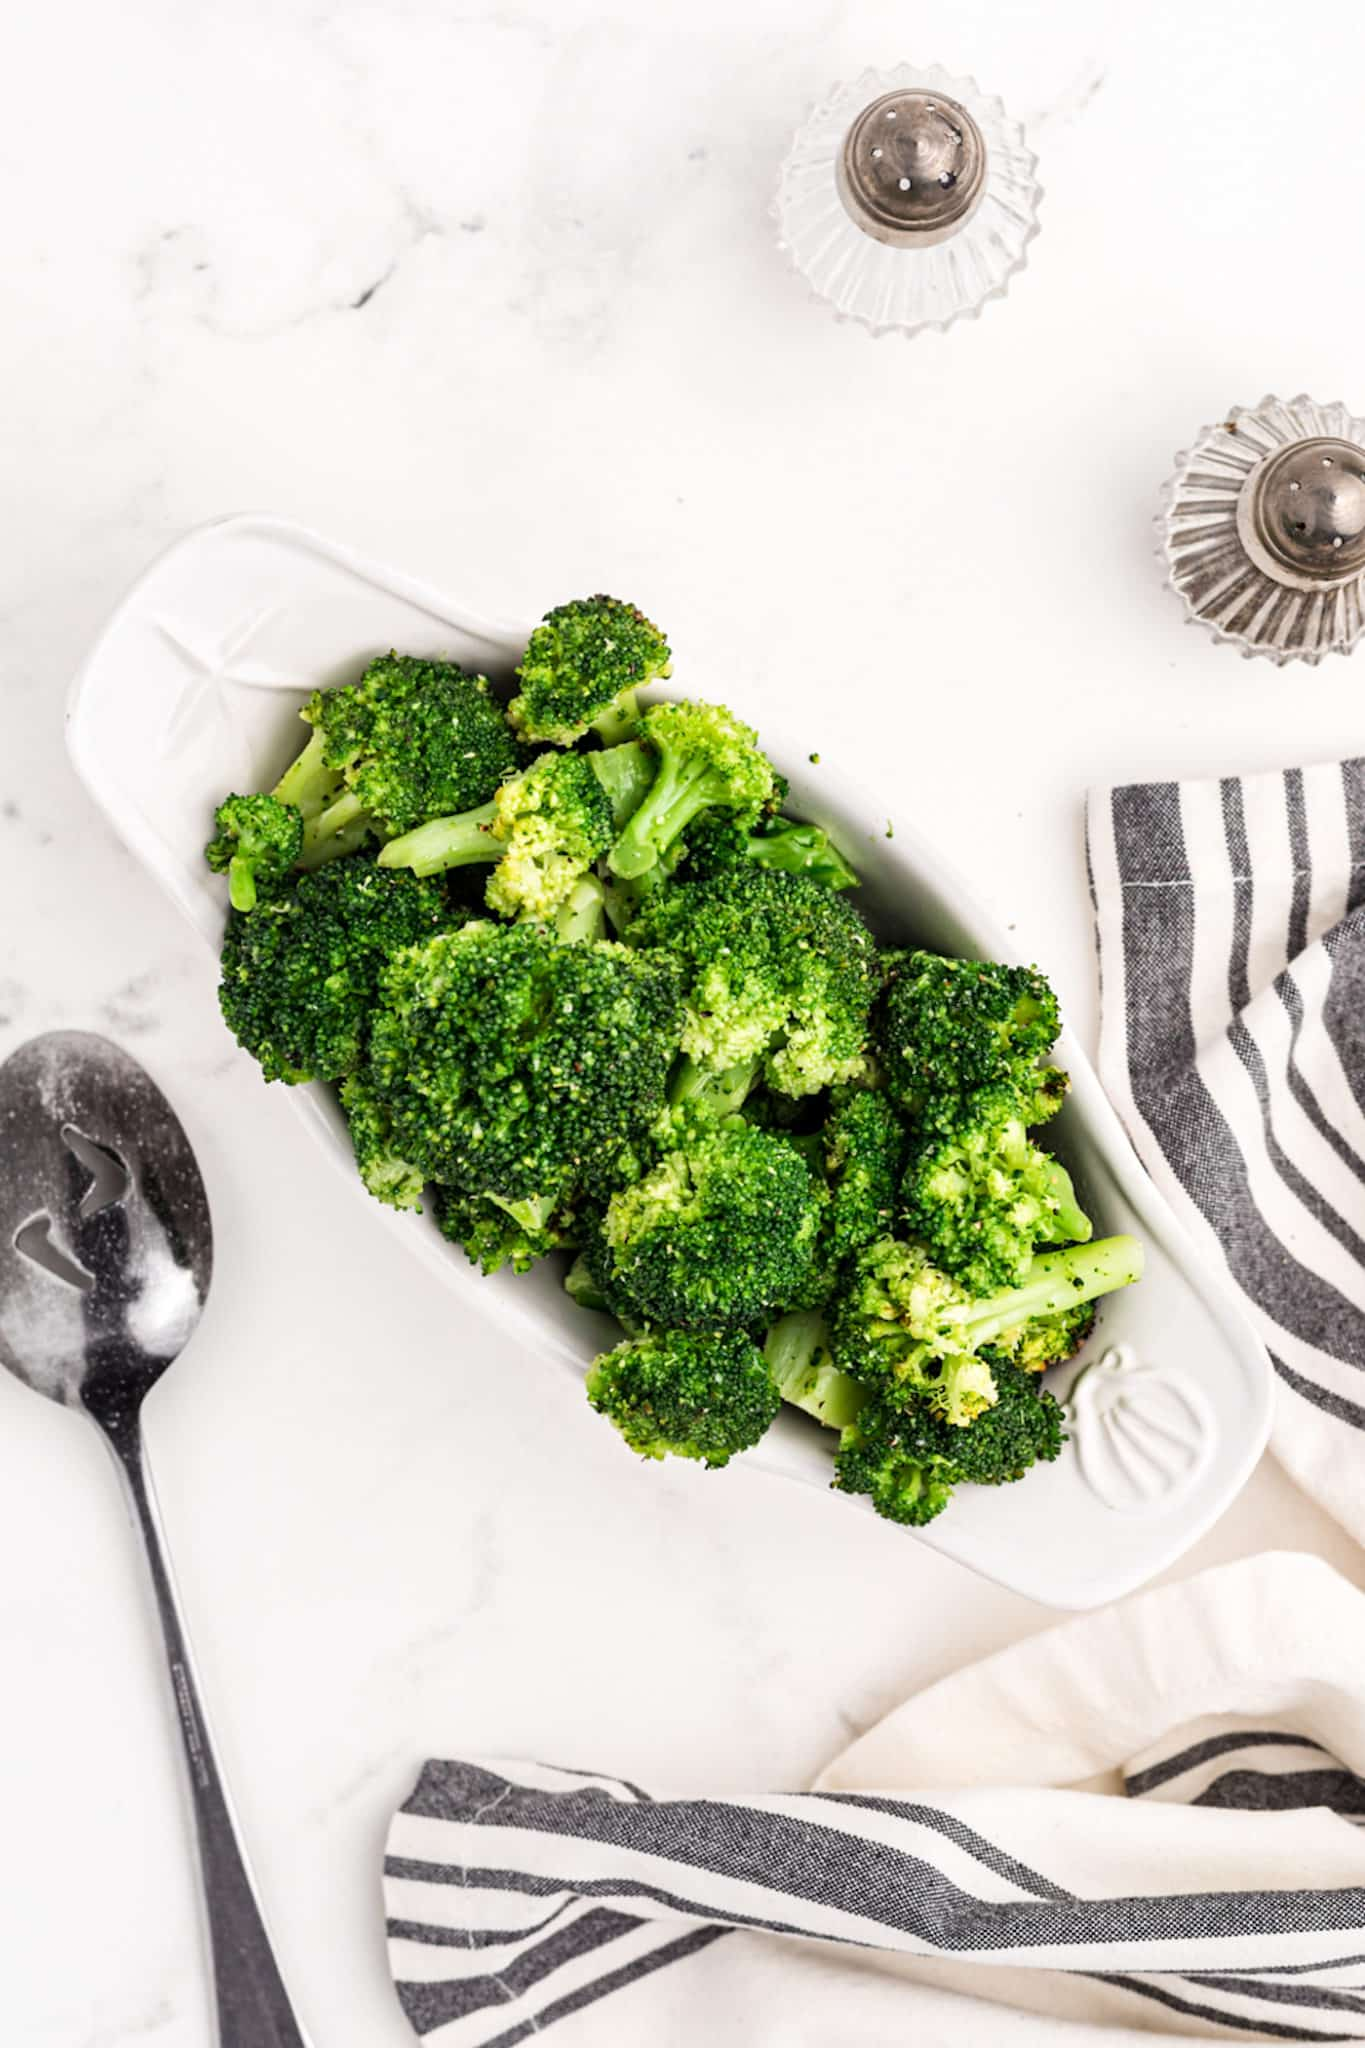 cooked broccoli served on a table with salt and pepper